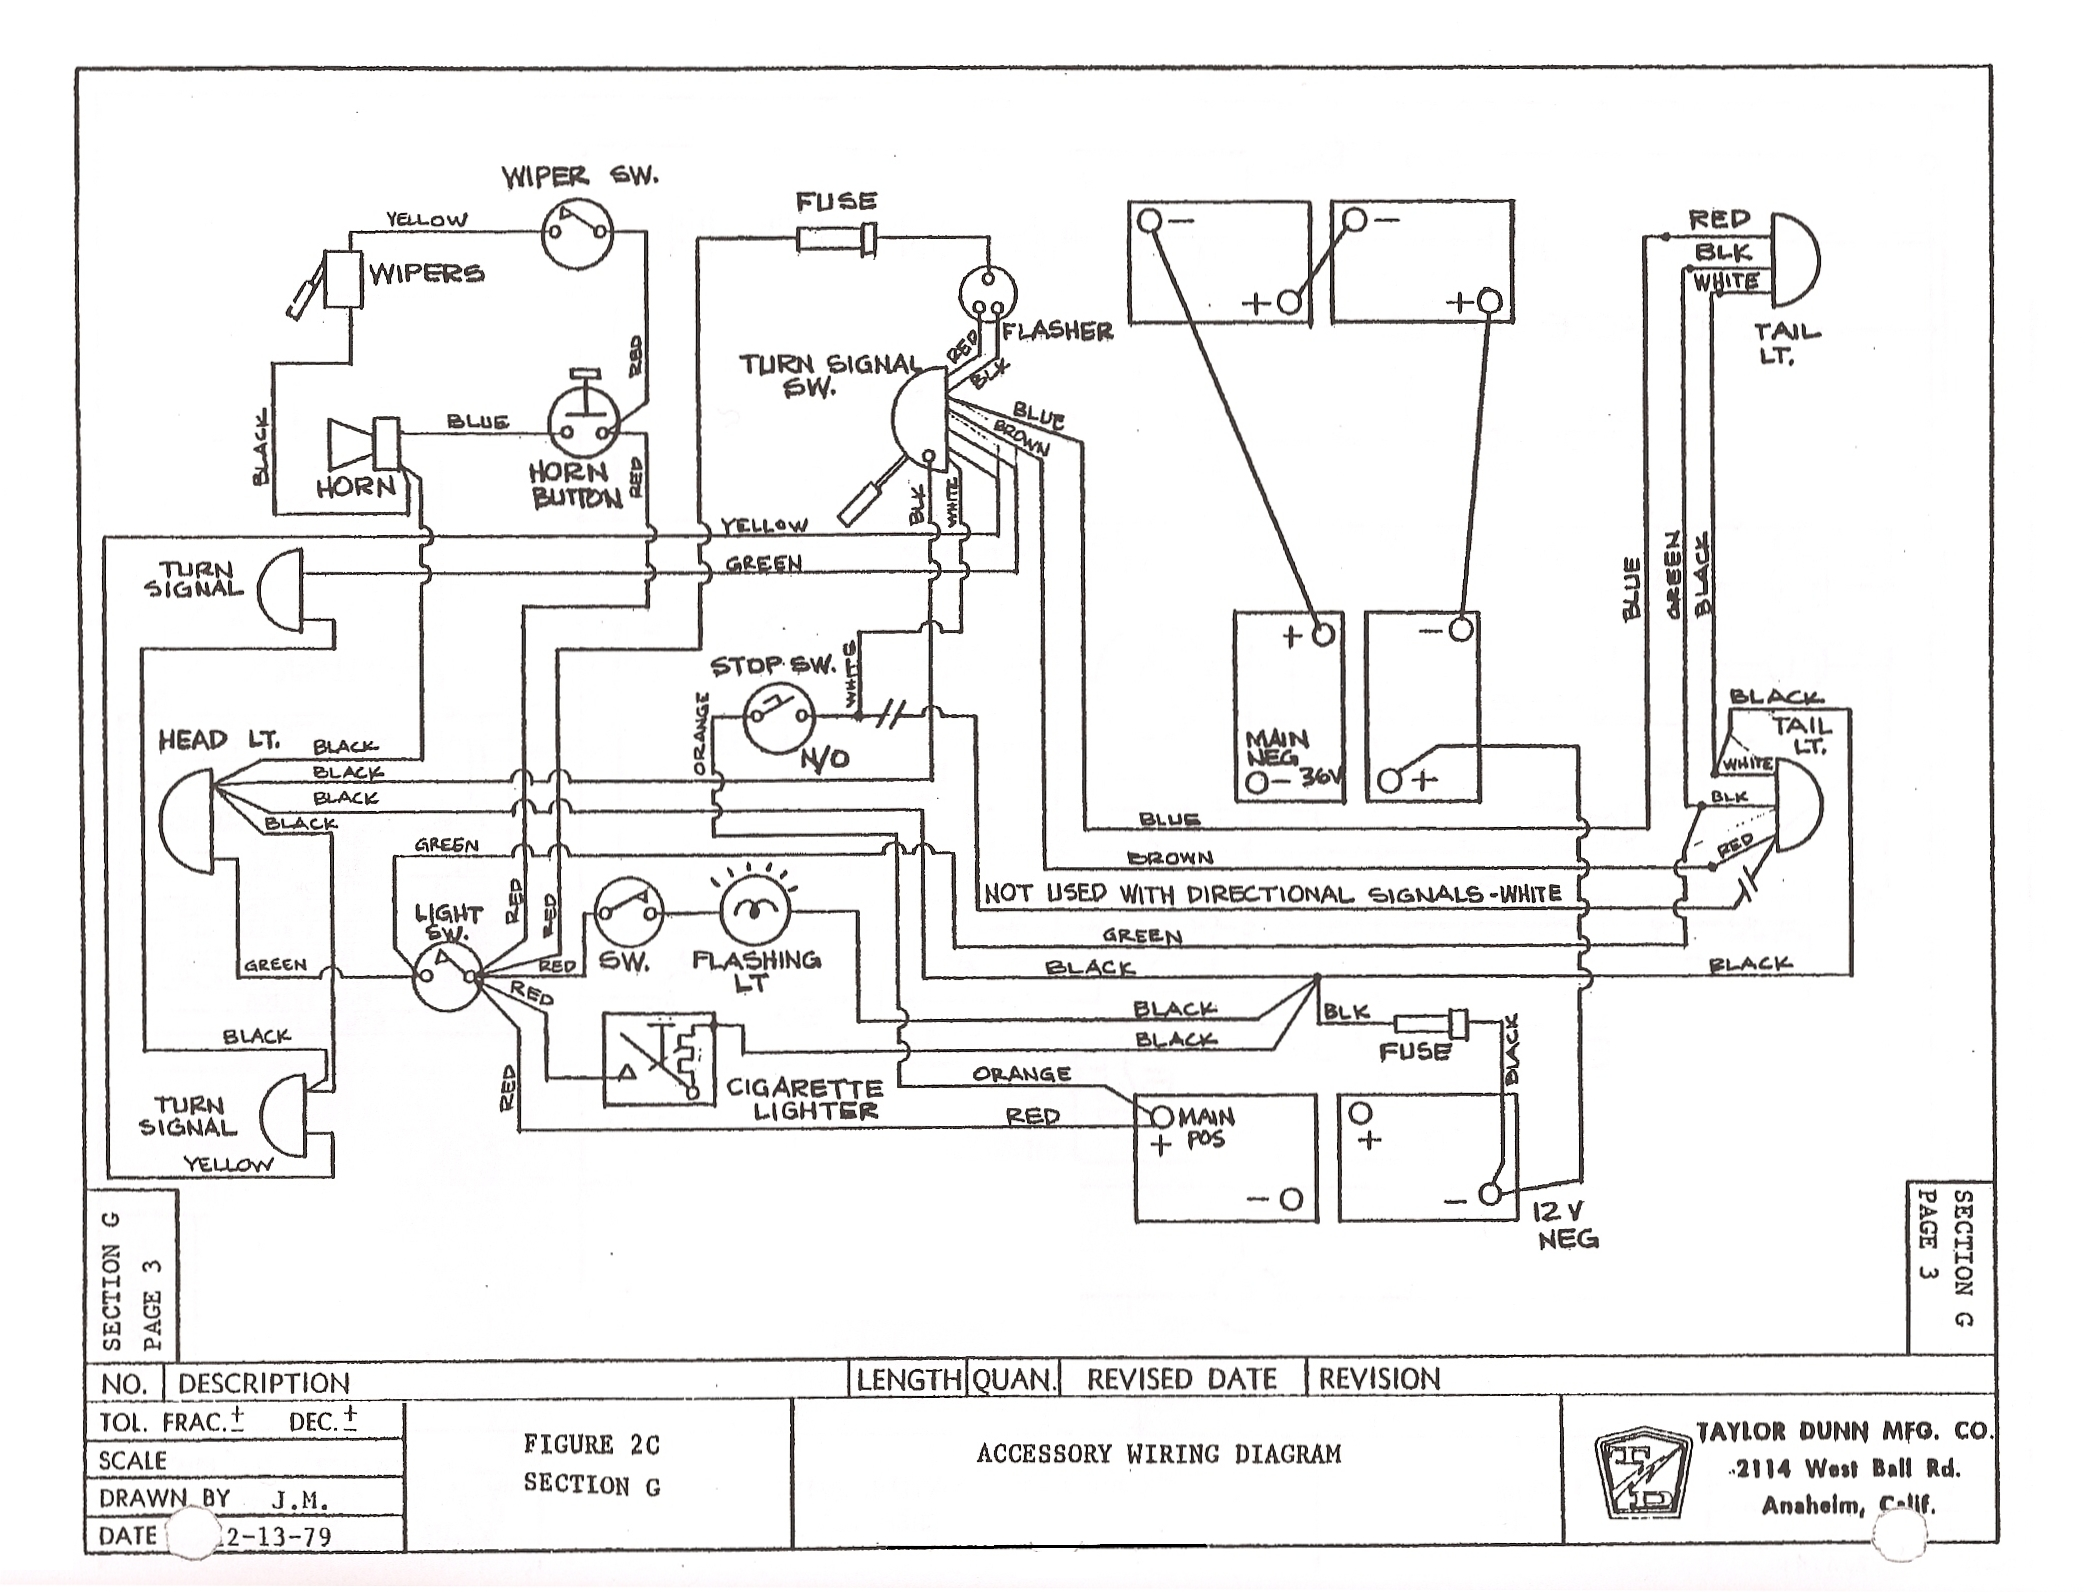 1999 Ezgo Golf Cart Wiring Diagram Opinions About 1994 Polaris 400 Free Picture Get Image 1996 Ez Go